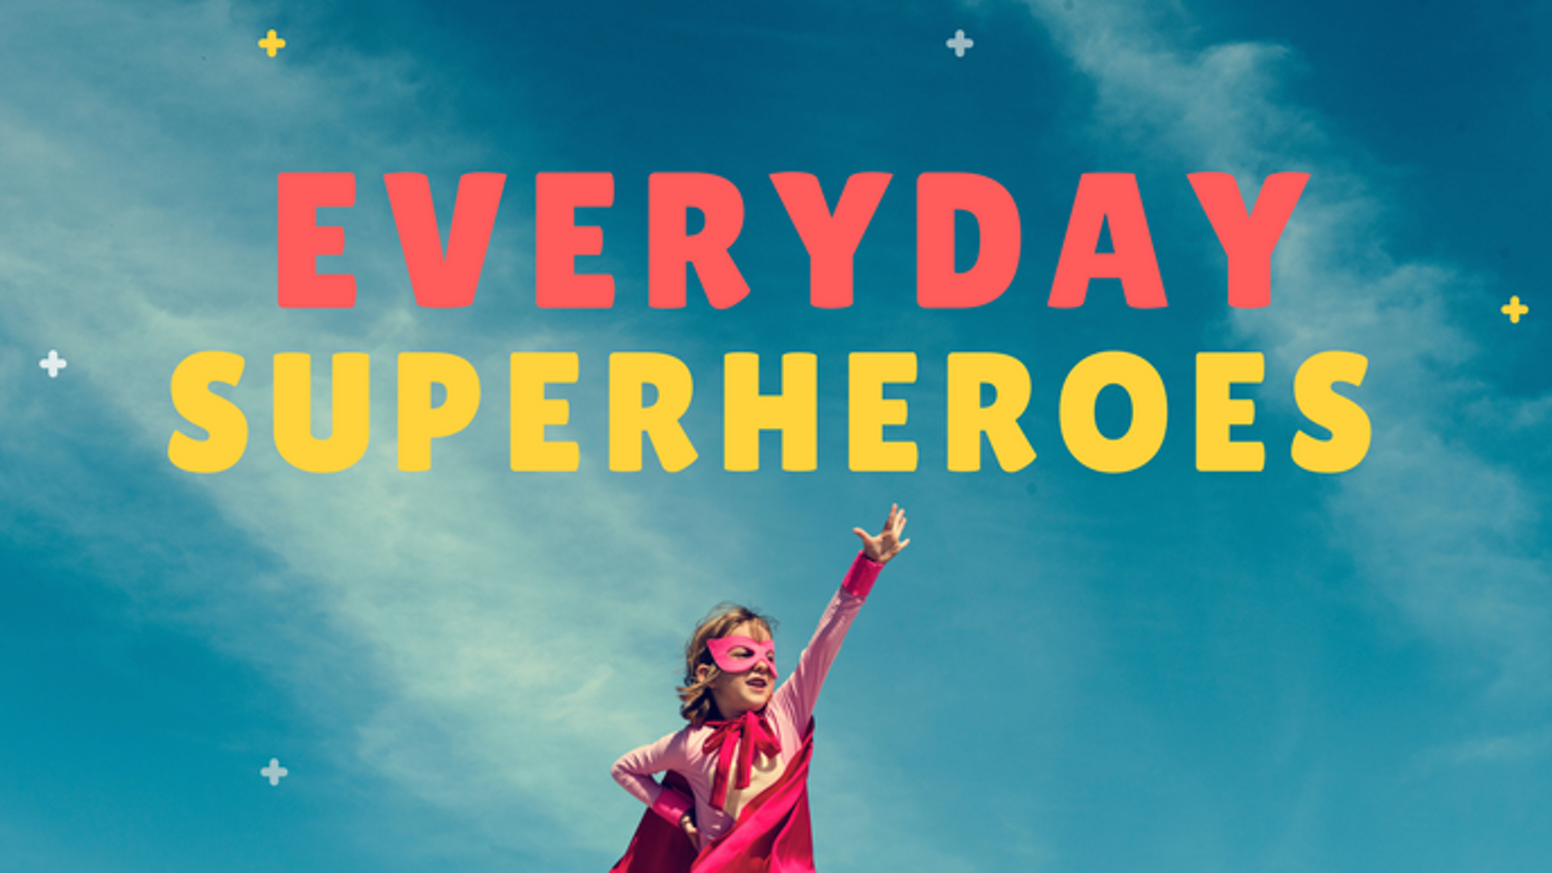 EVERYDAY SUPERHEROES